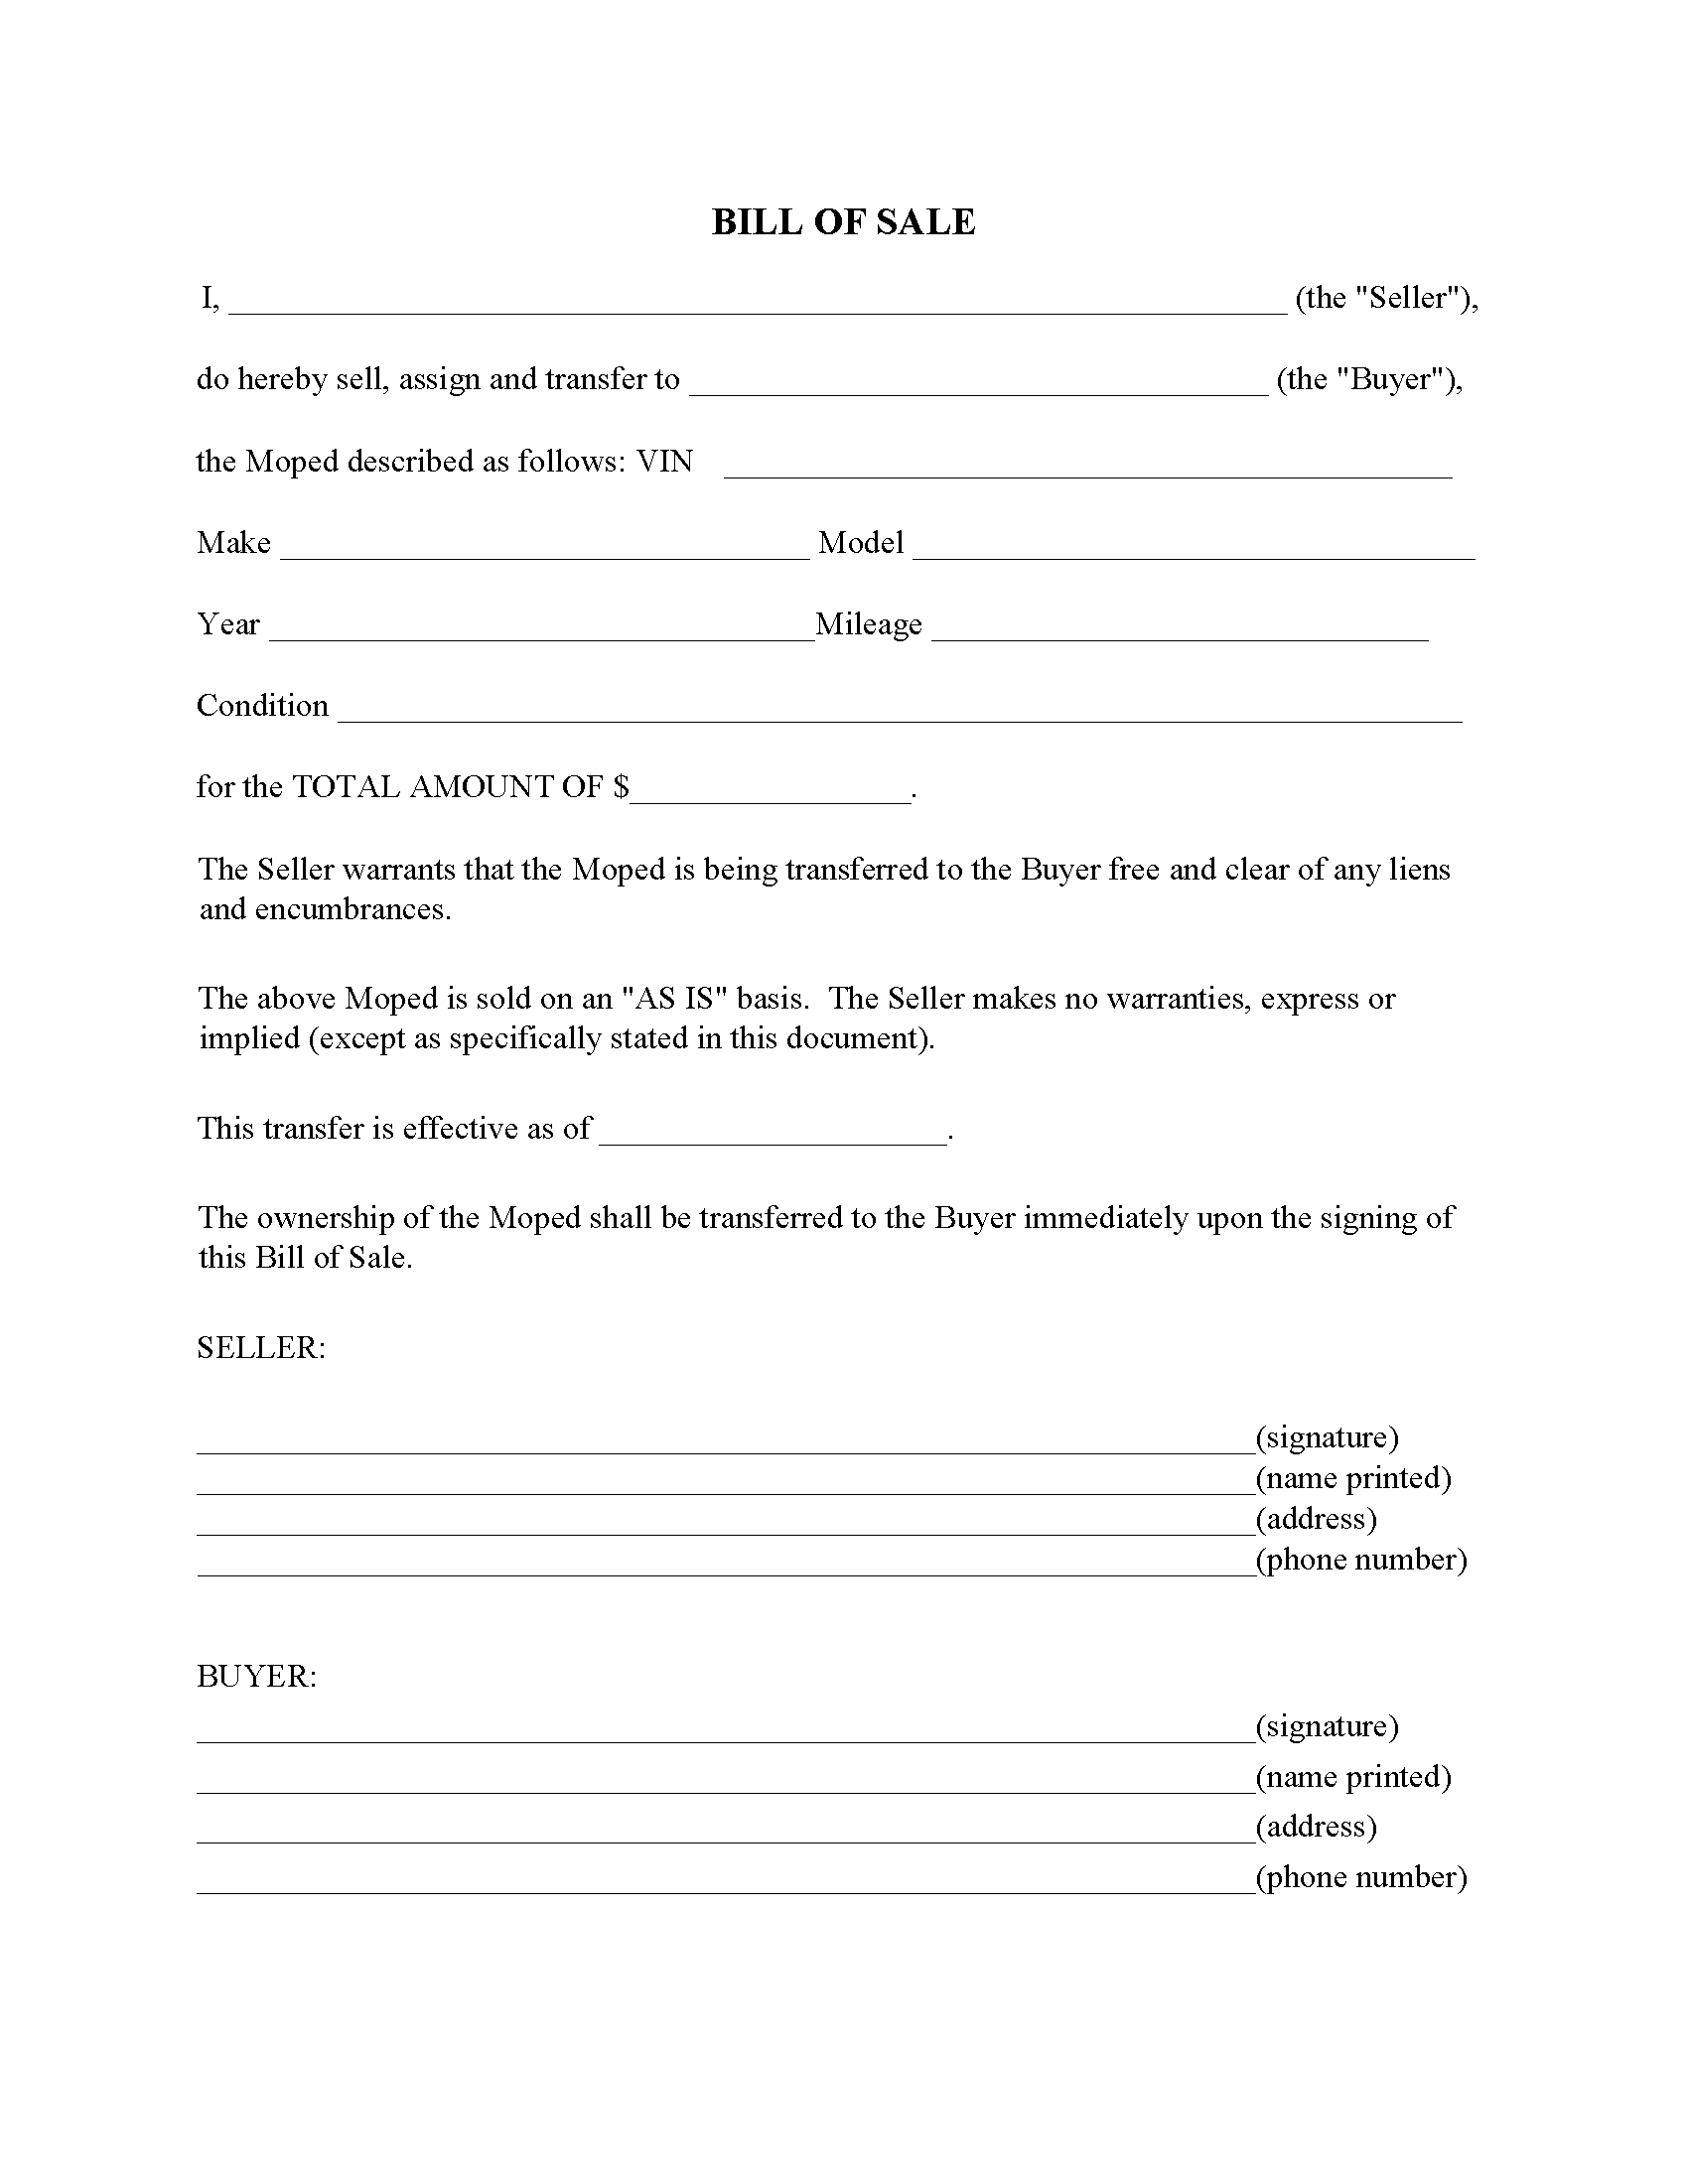 Moped Bill Of Sale Form Fillable Pdf Free Printable Legal Forms